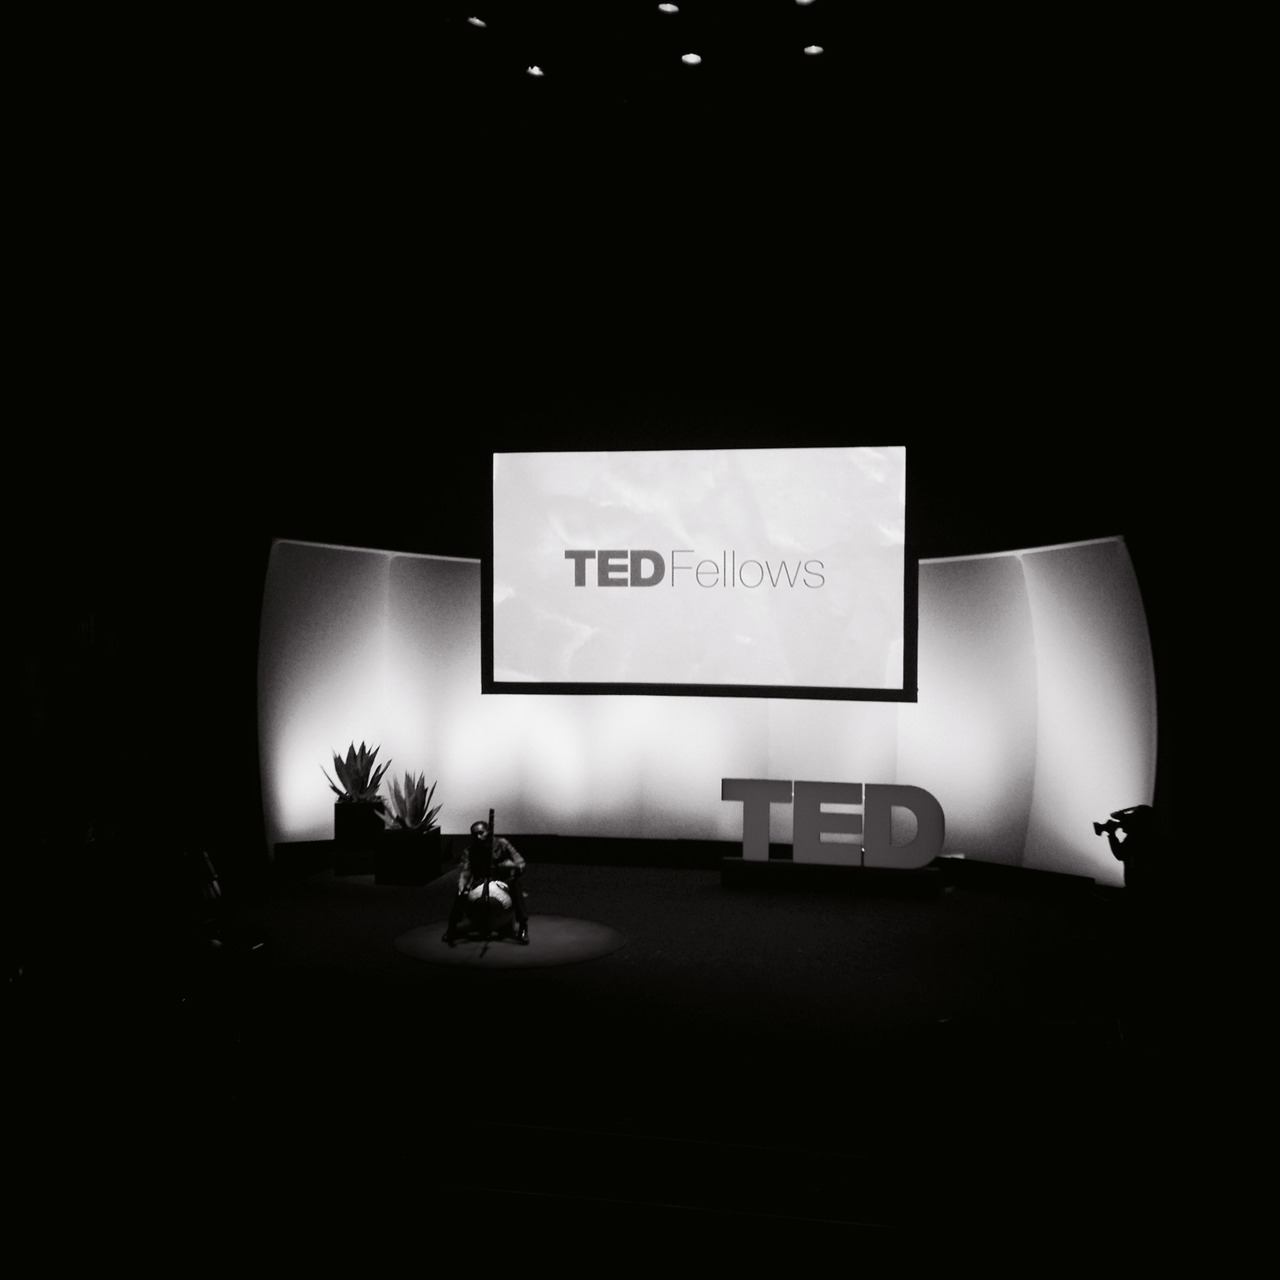 #TEDatunde #notlivetweeting but others are on #TED2013 at TED 2013 The Young, The Wise, The Undiscovered – View on Path.